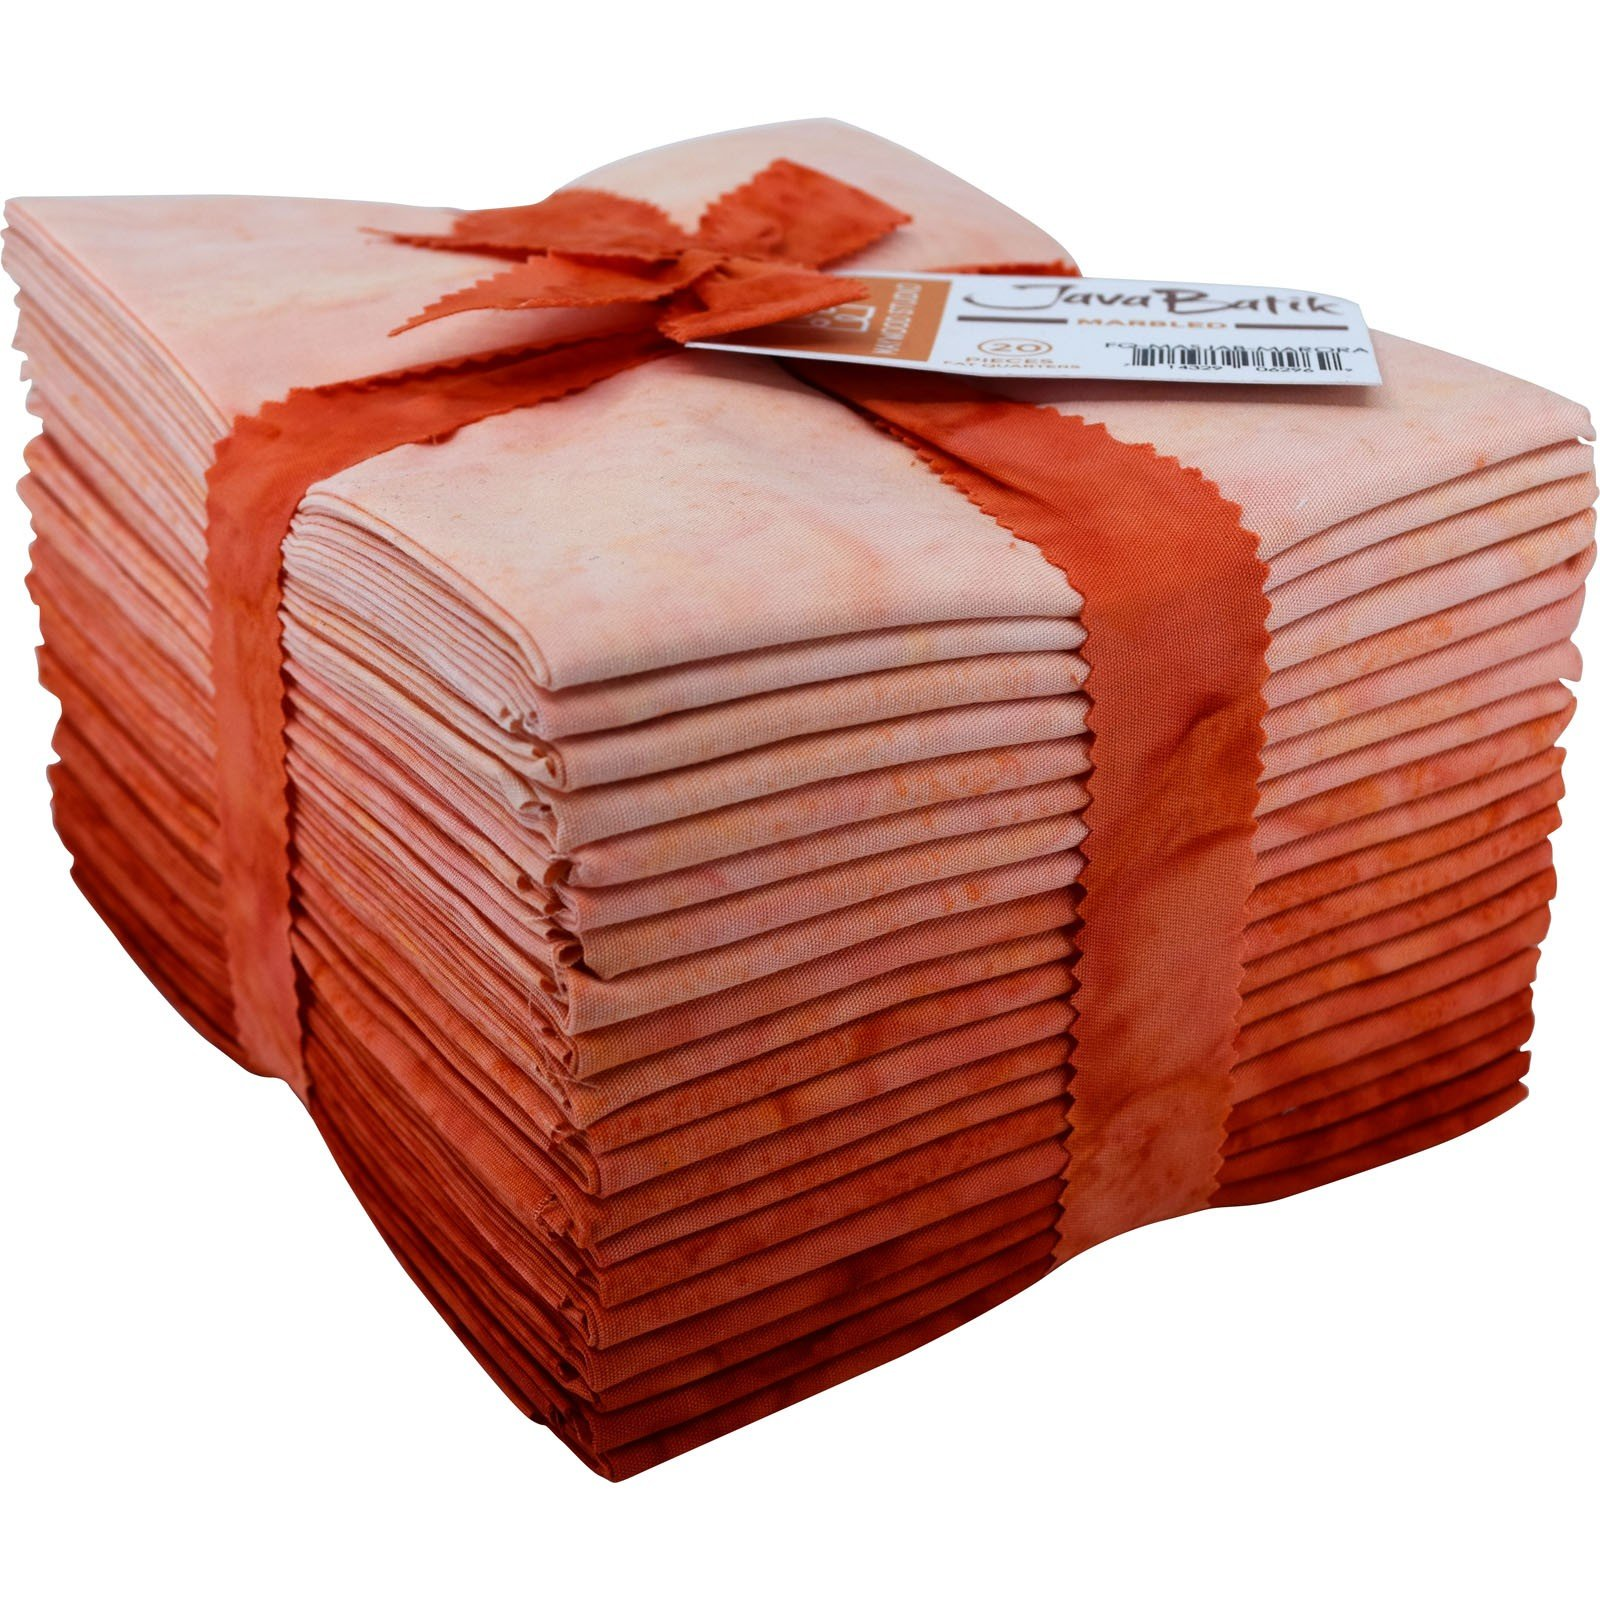 Maywood Java Batiks ORANGE Marble Bundles Fat Quarters (20)